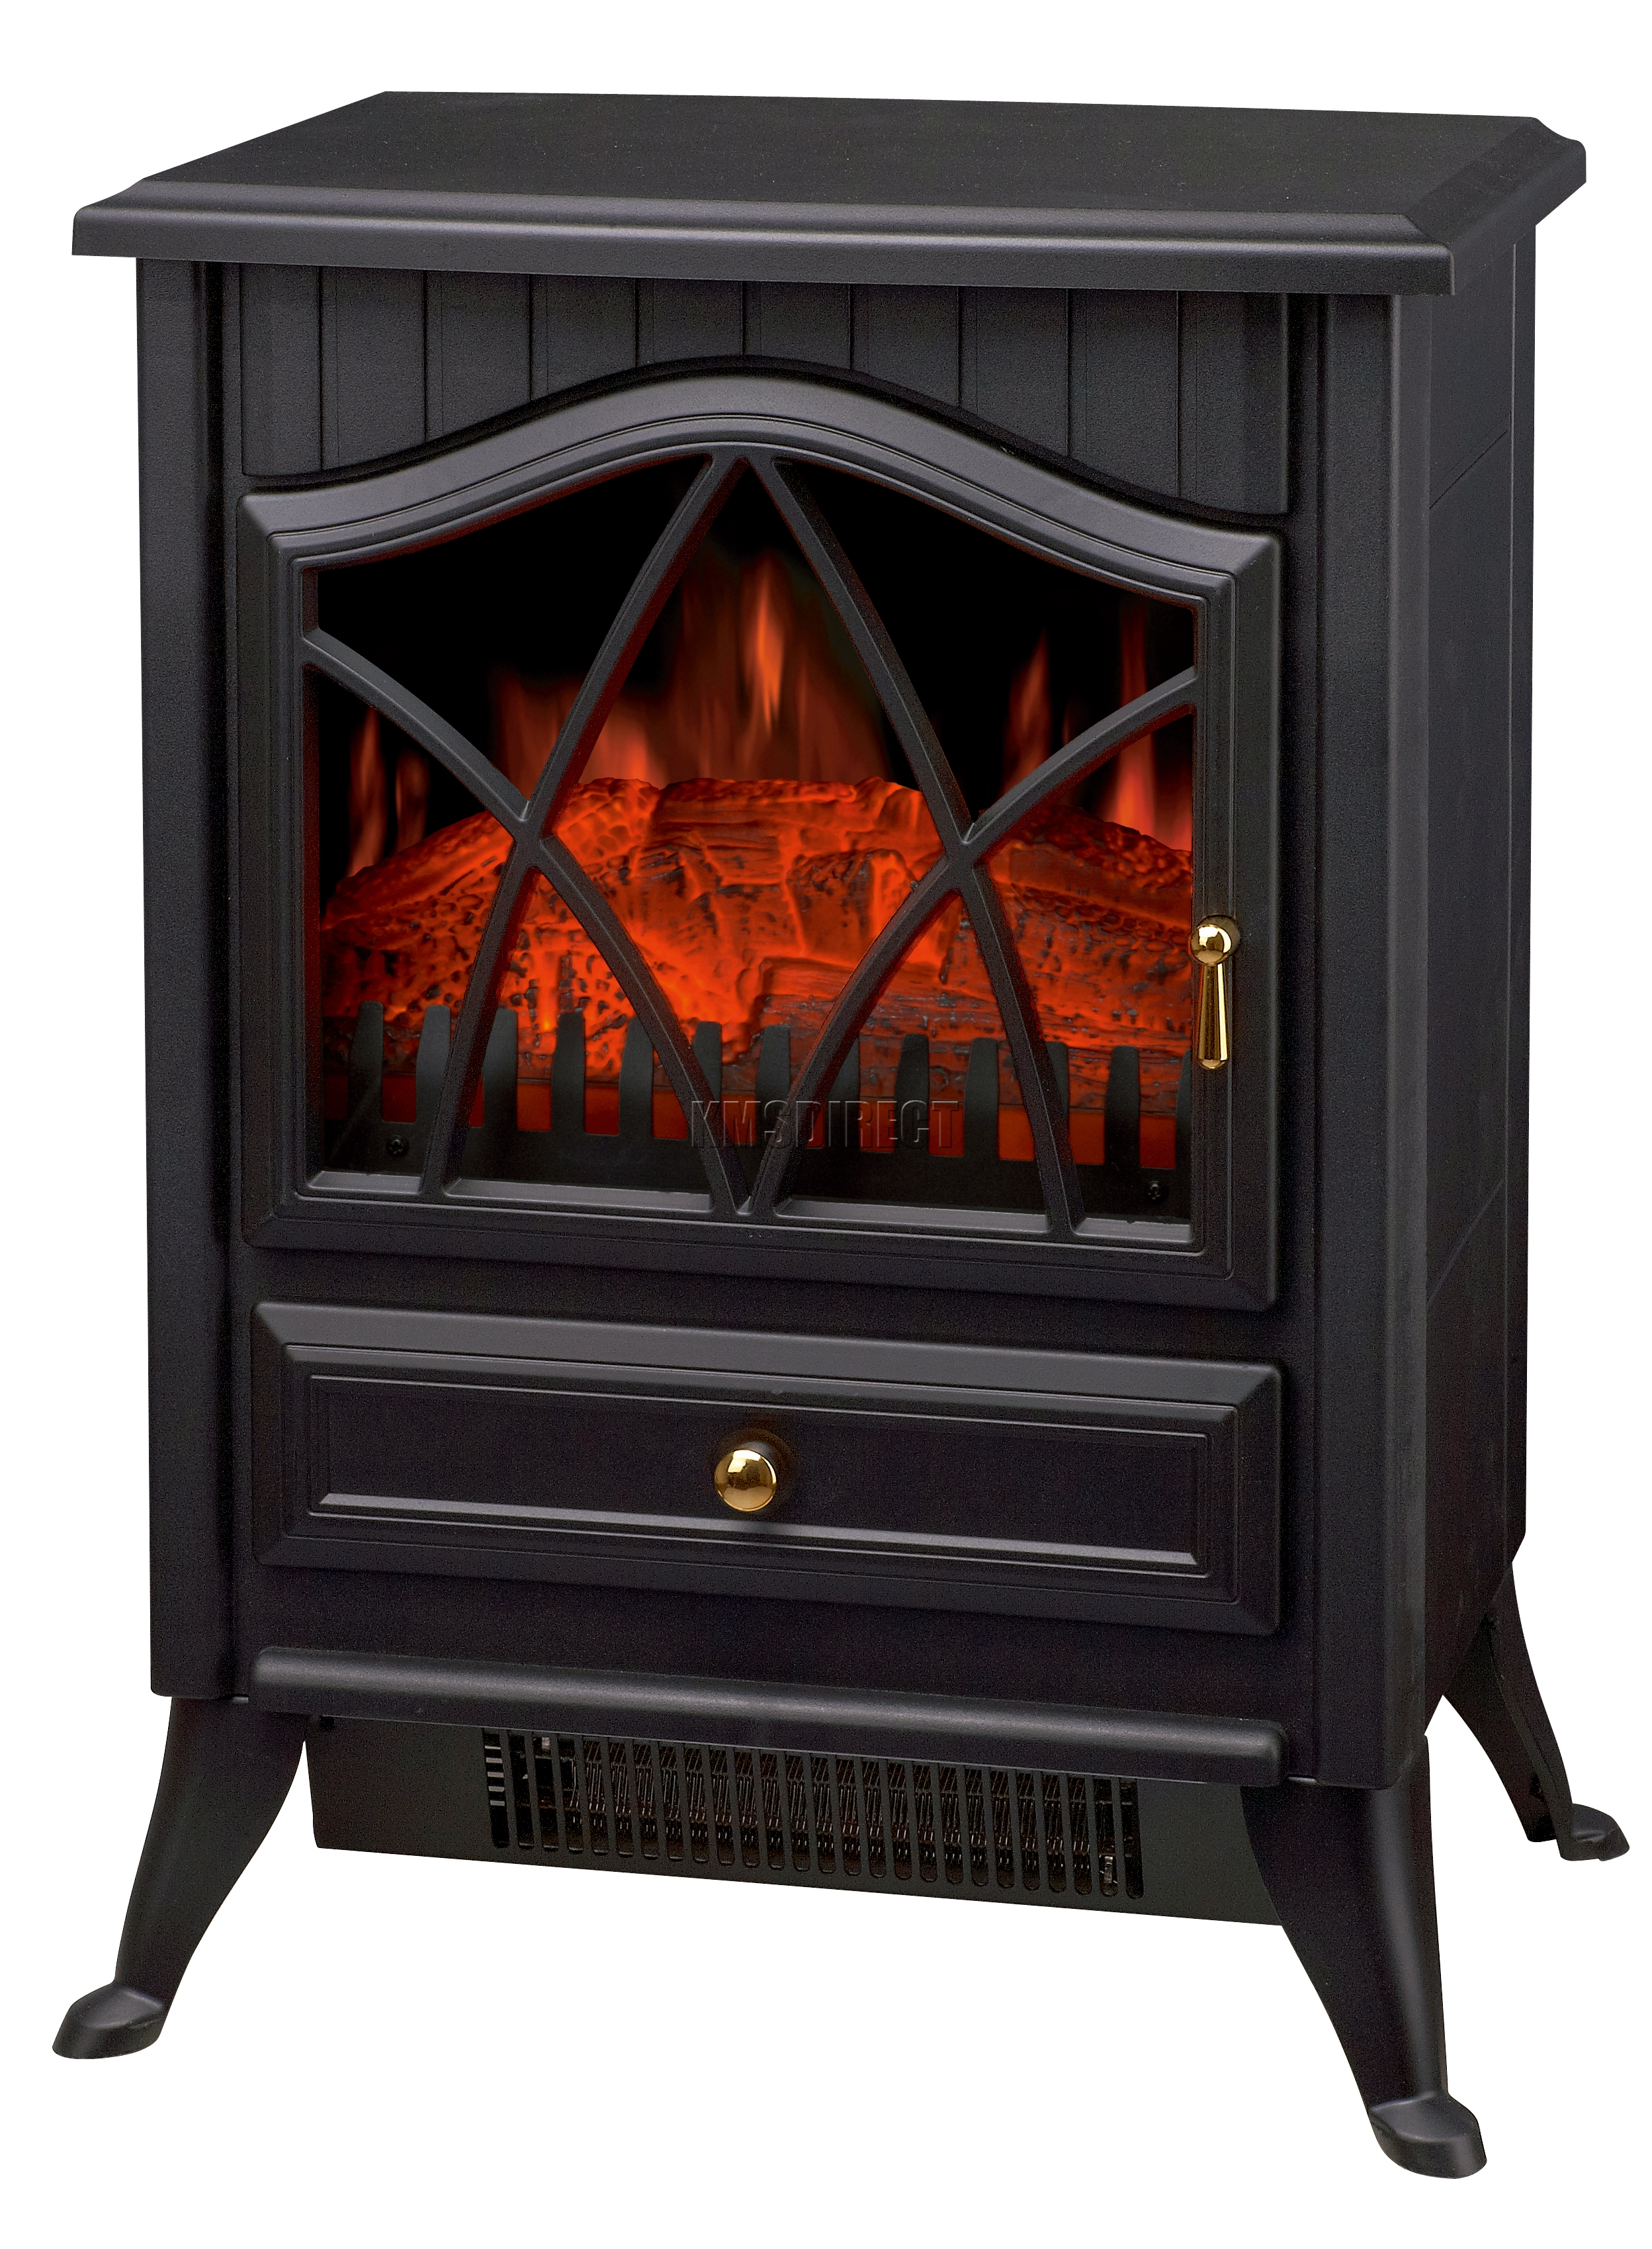 Log Burning Flame Effect 1850W Electric Fire Heater Standing ...